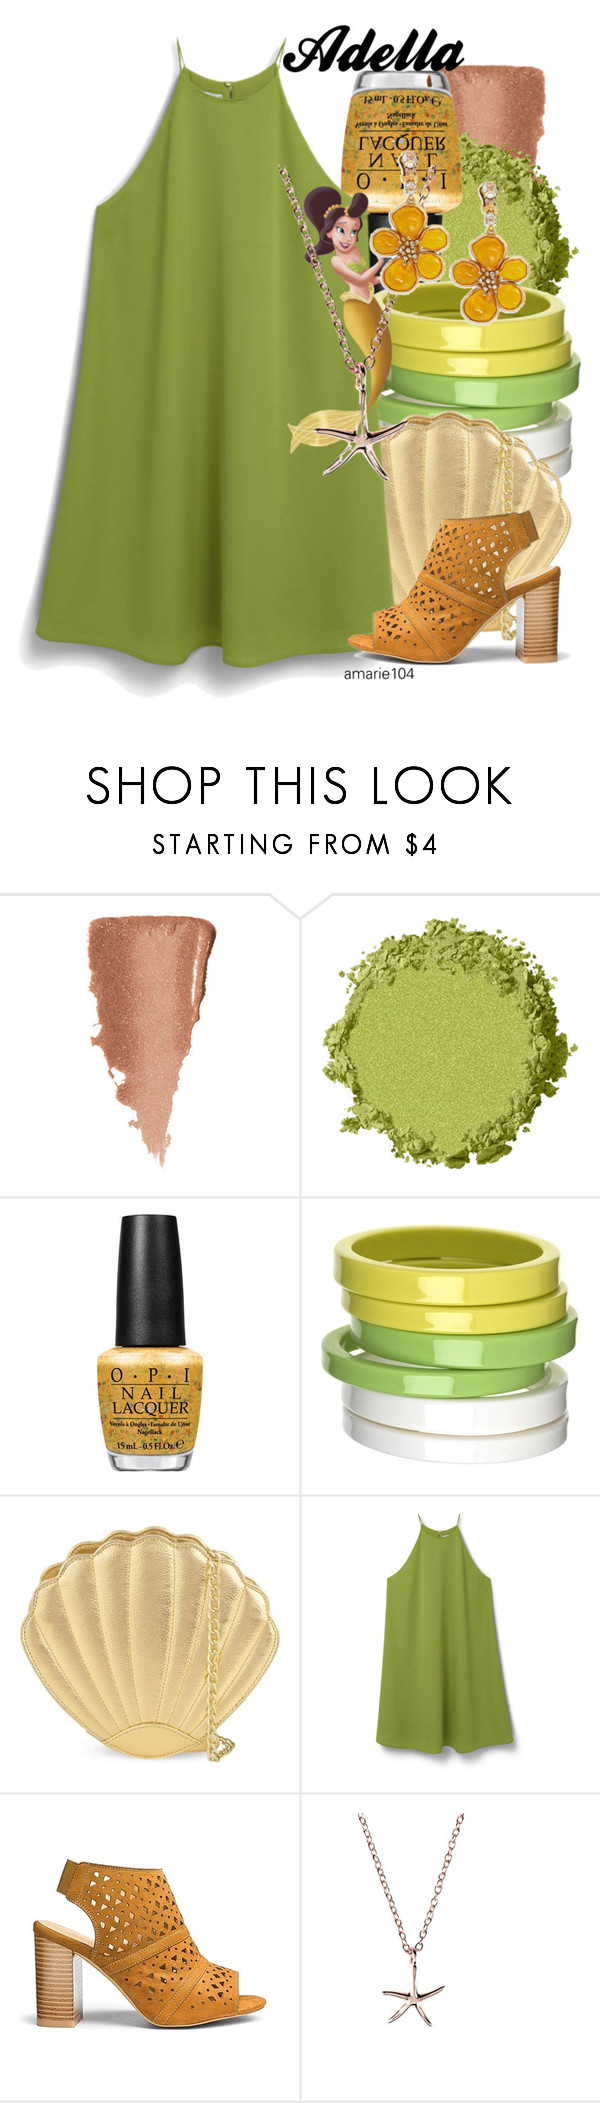 """Adella"" by amarie104 ❤ liked on Polyvore featuring OPI, By Malene Birger, Skinnydip, MANGO, Latelita and Oscar de la Renta"